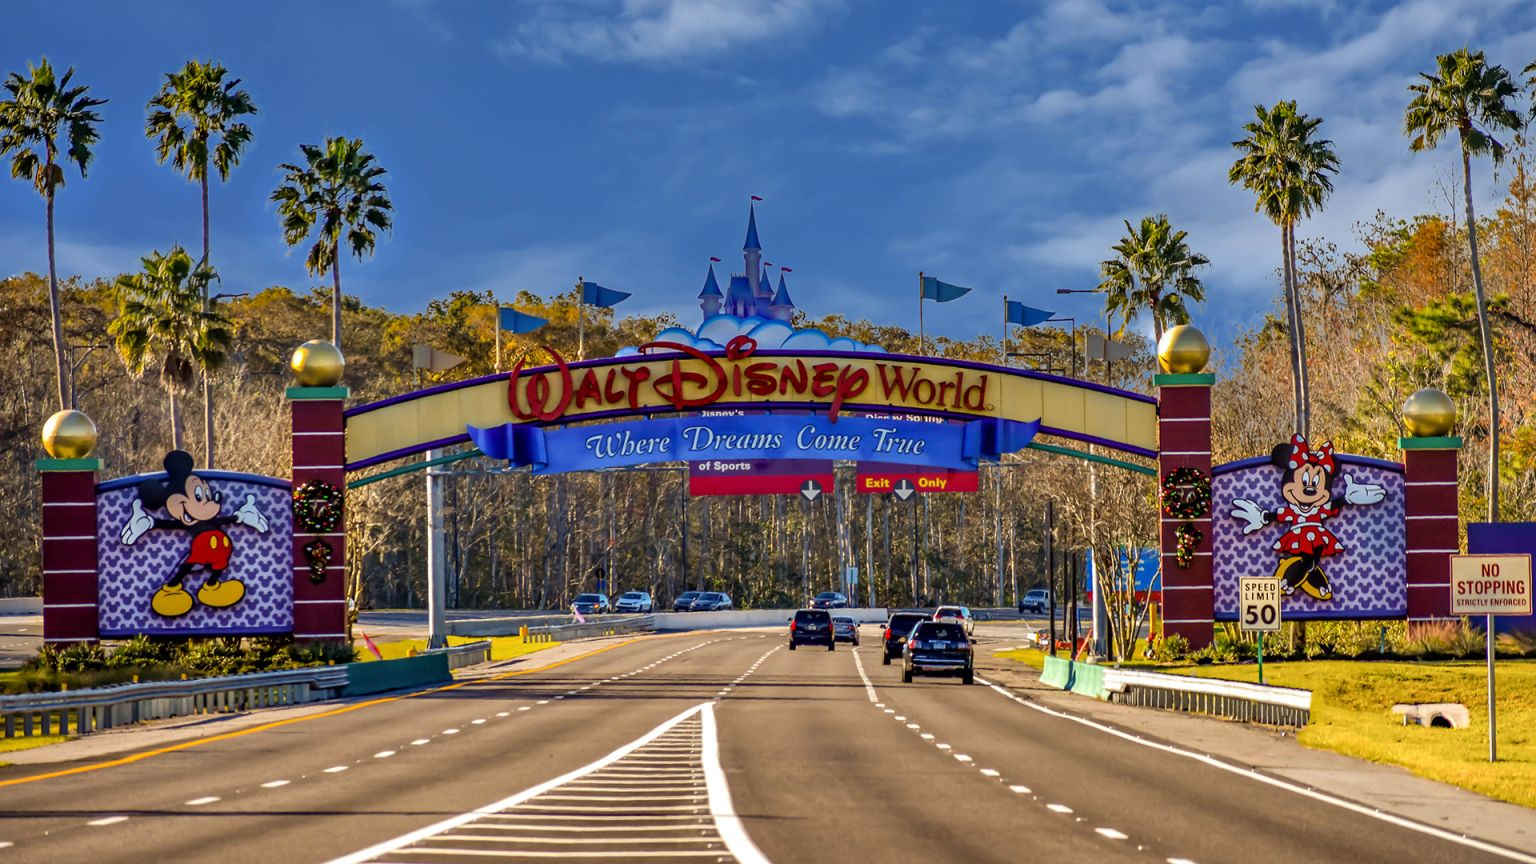 Pop Culture Articles News Trends Current Events In 2020 Disney World Resorts Disney World Disney World Packages